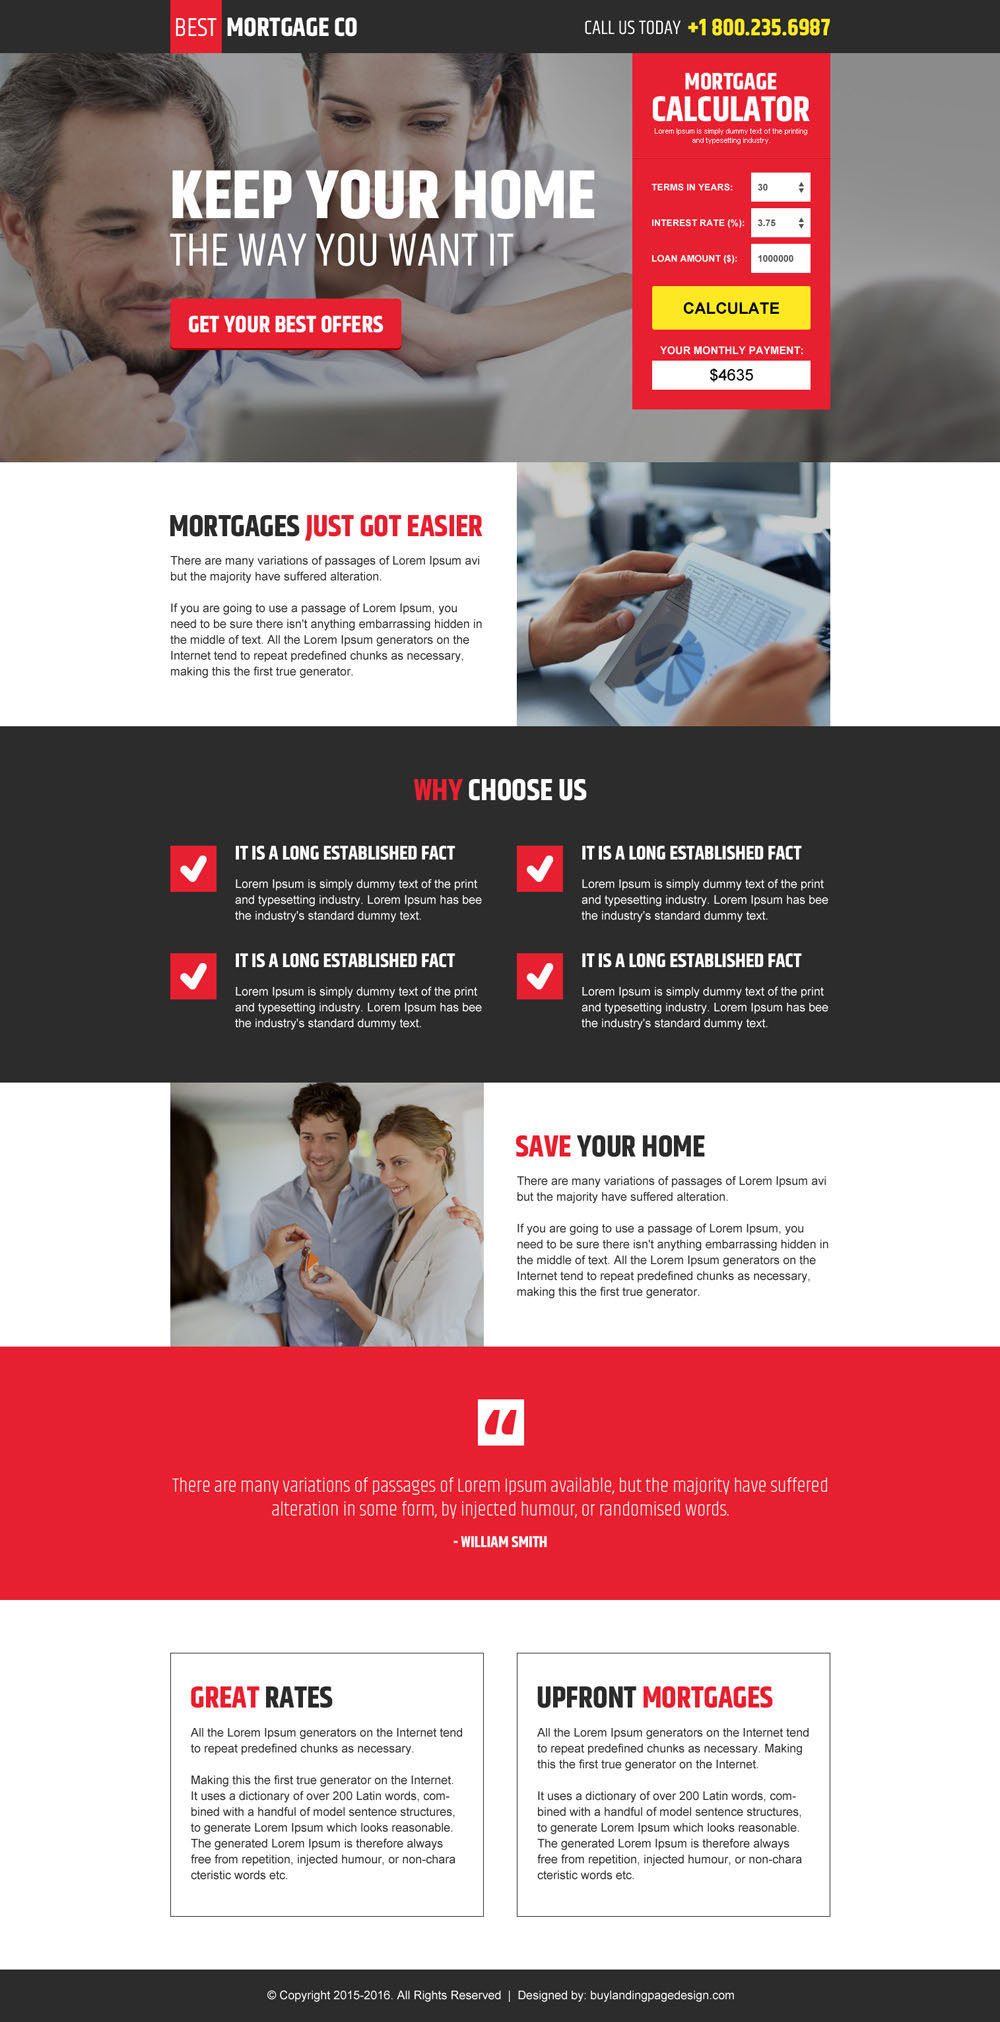 mortgage-calculator-landing-page-design-templates-that-converts-016